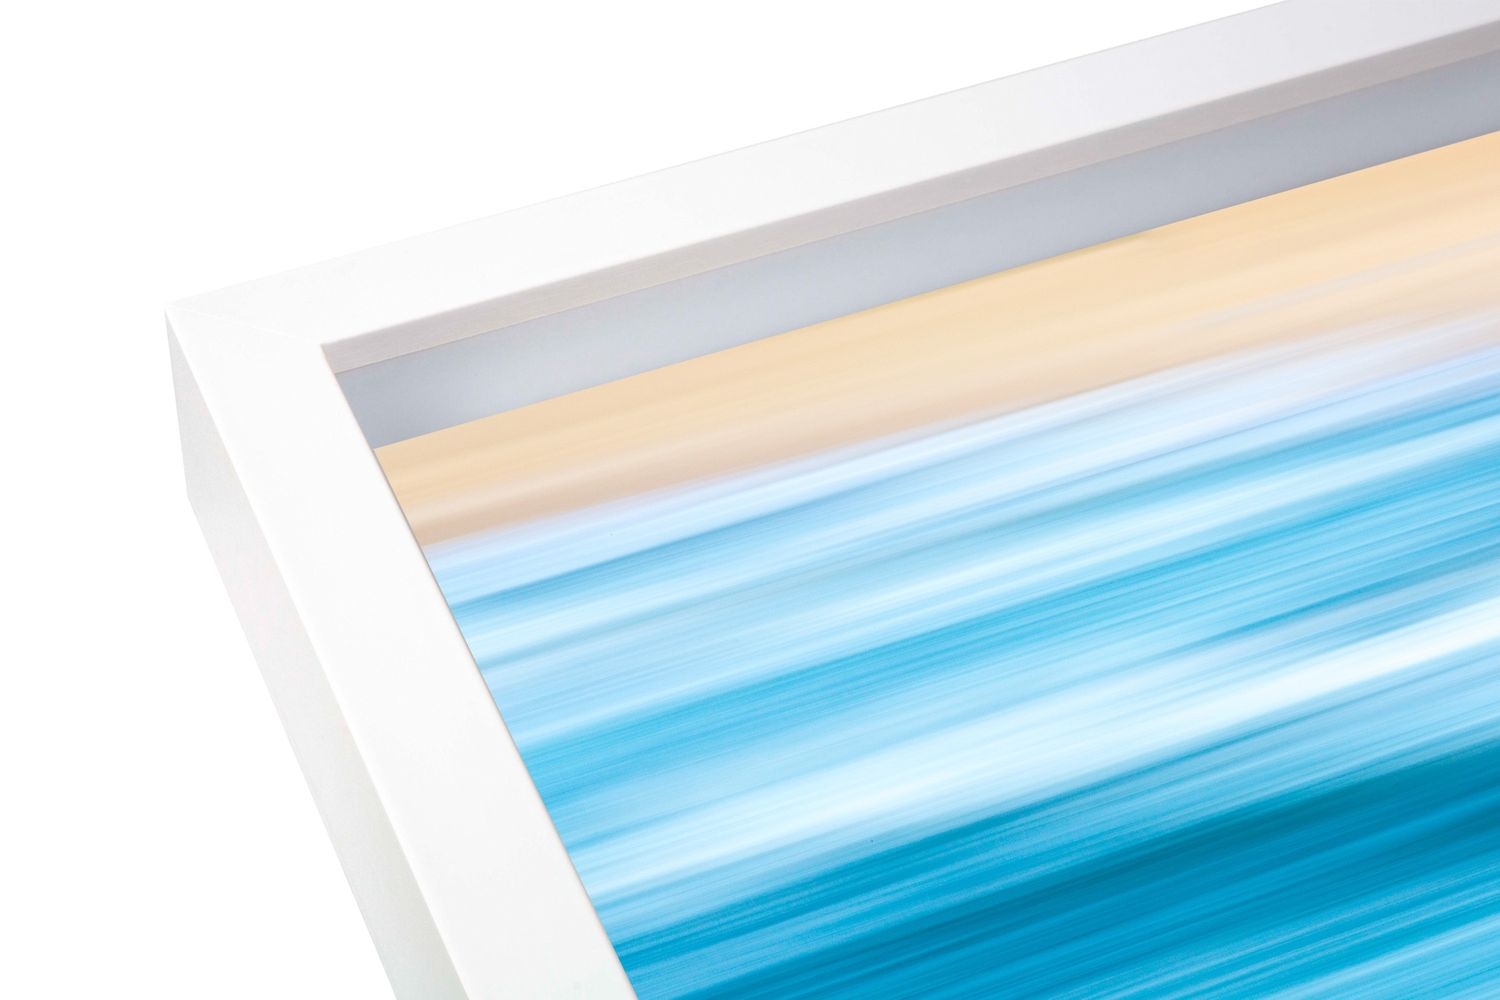 Salty Gallery offers box framed prints of its ocean imagery